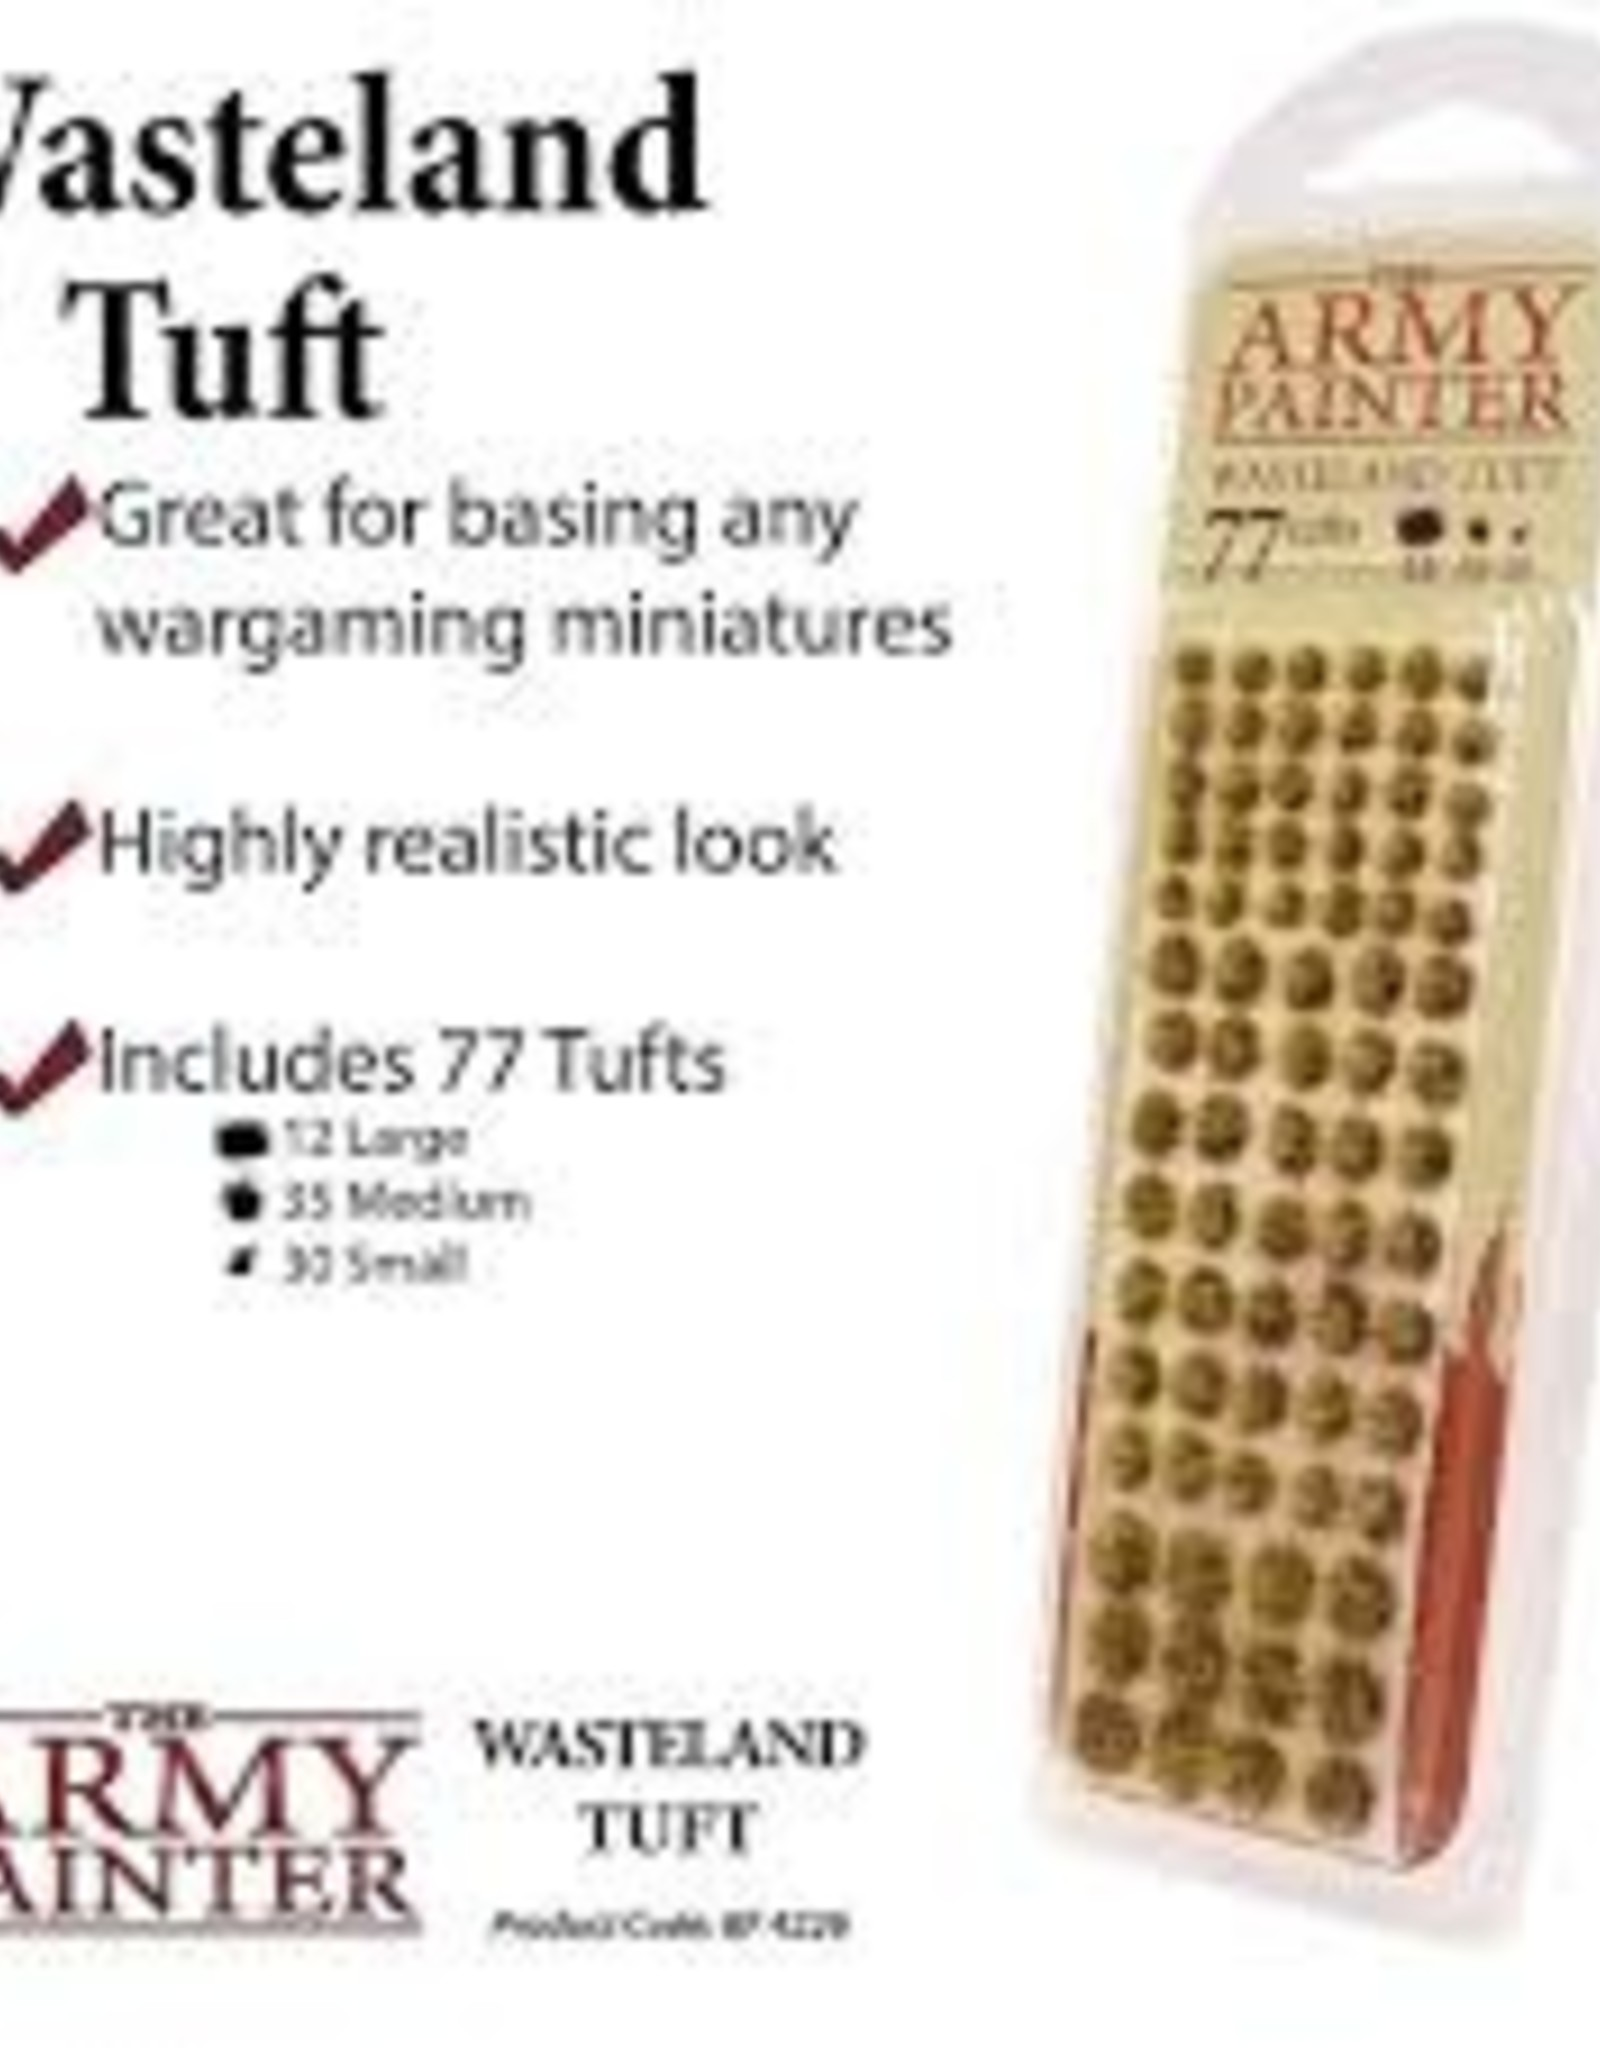 The Army Painter Tufts: Wasteland